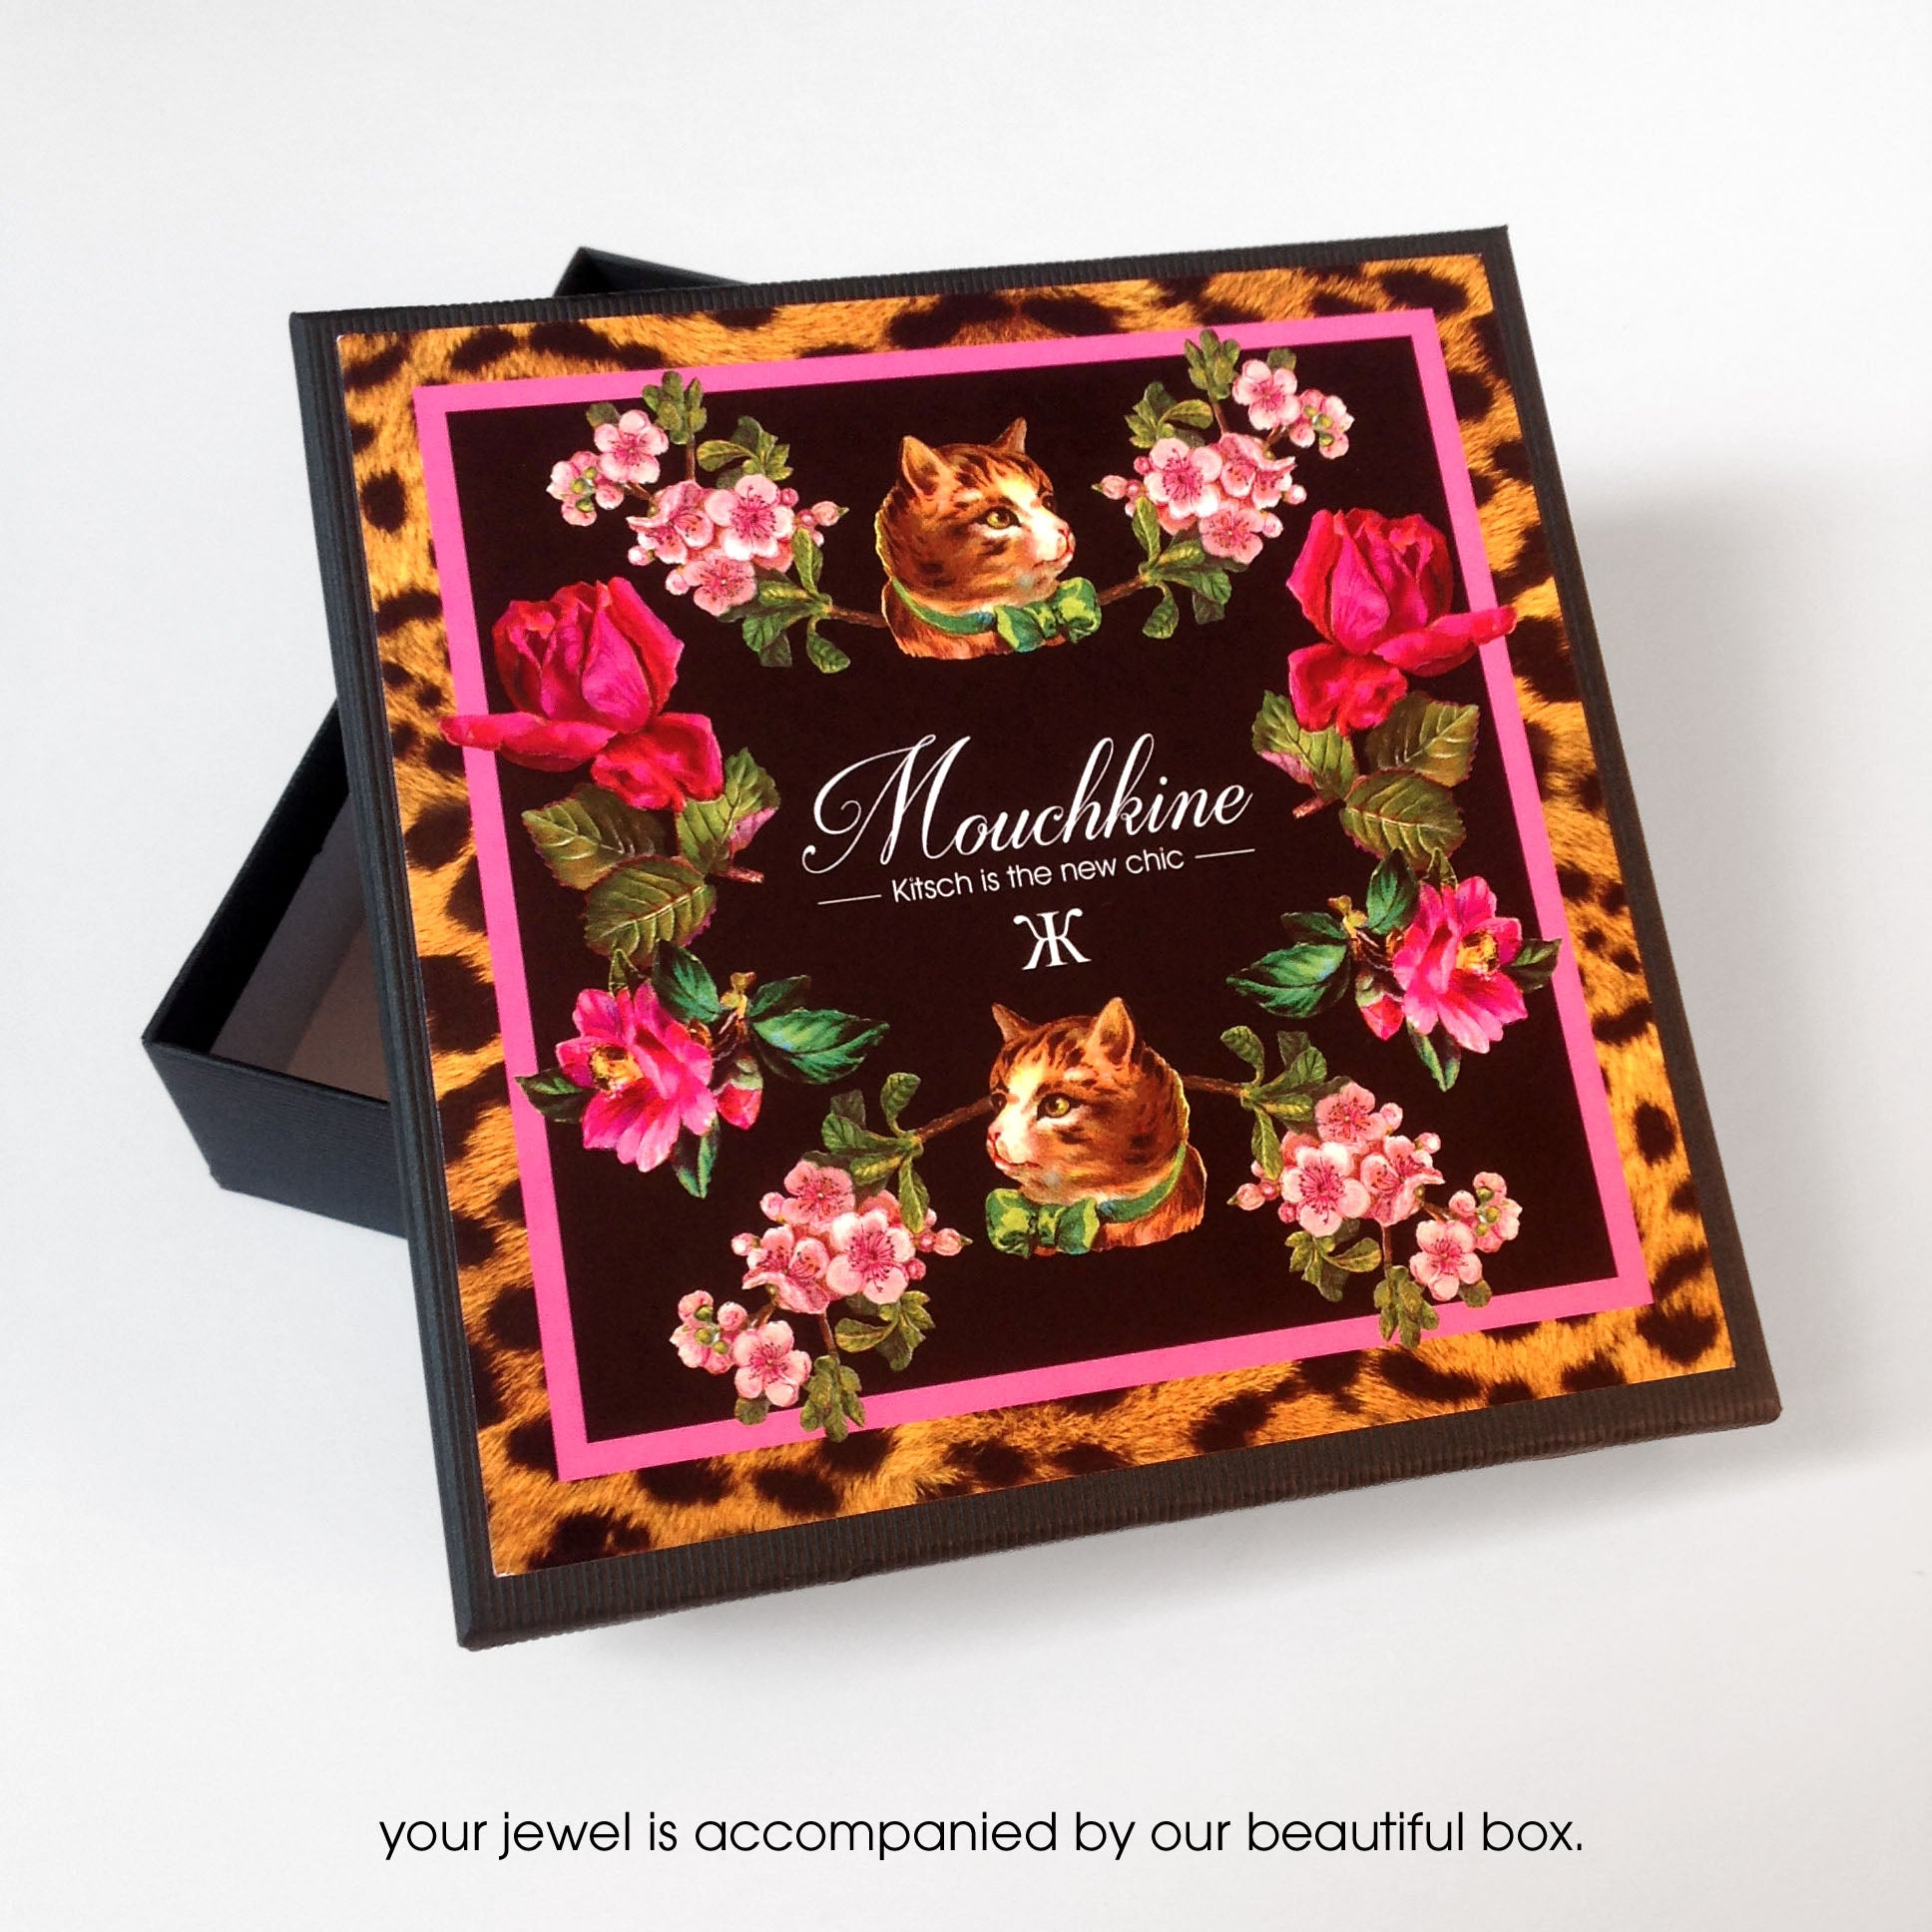 mouchkine jewelry fashion design trendy luxury packaging